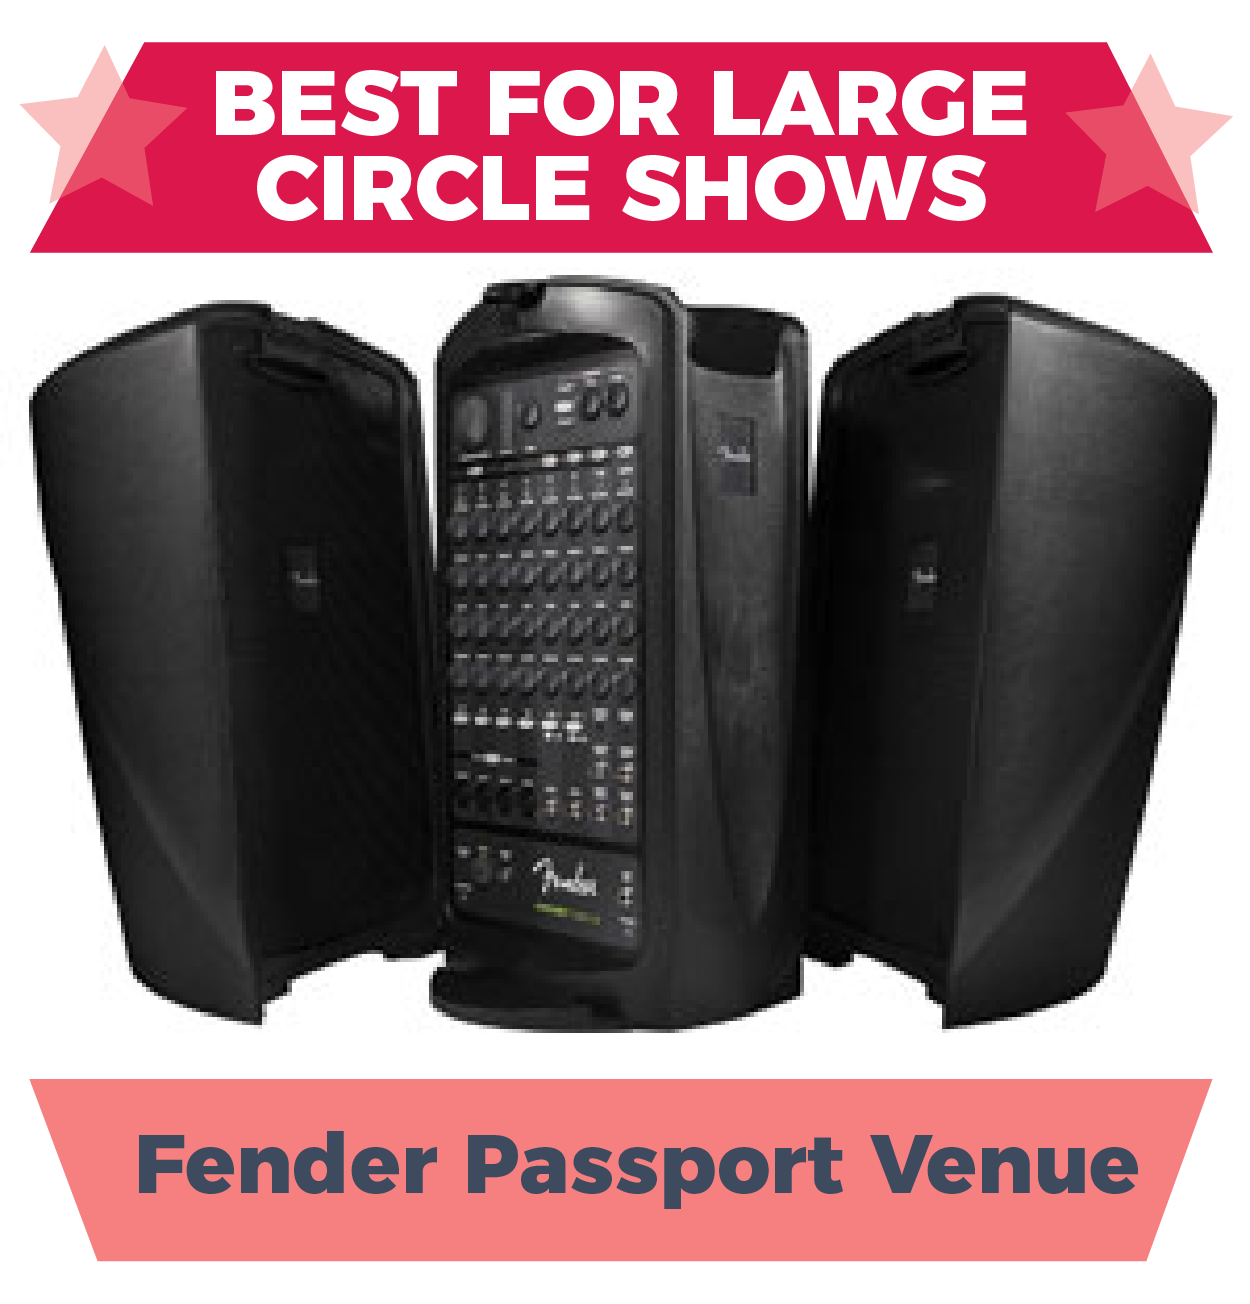 Fender Passport Venue, one of the best amps for busking for groups and circle shows